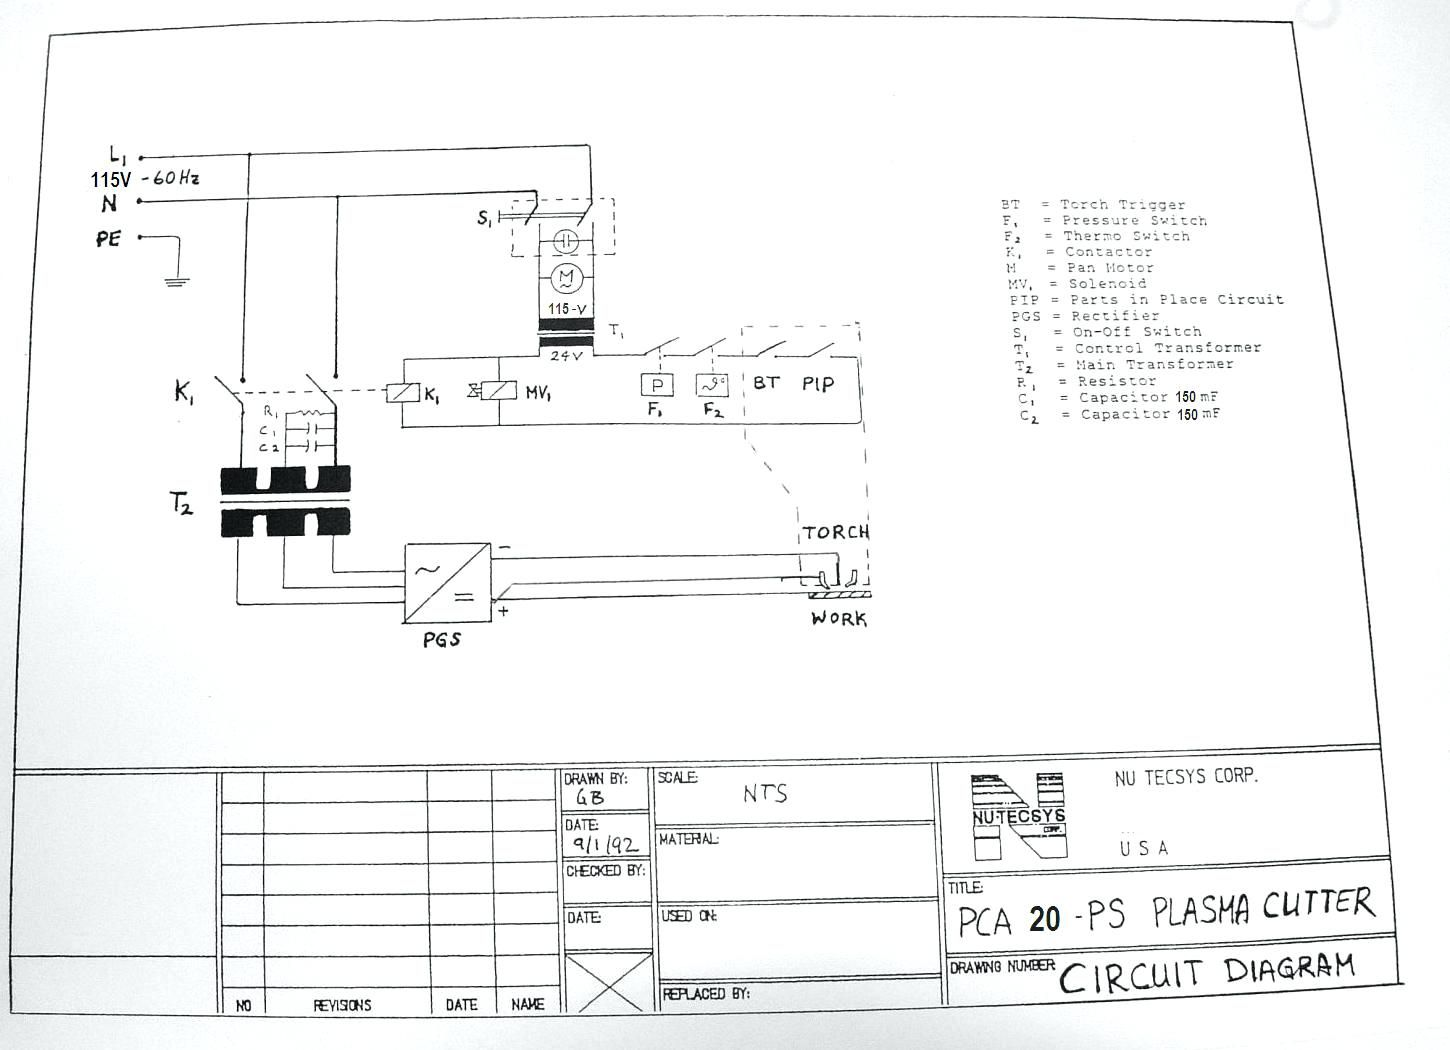 Wiring Manual PDF: 115v Breaker Wiring Diagram